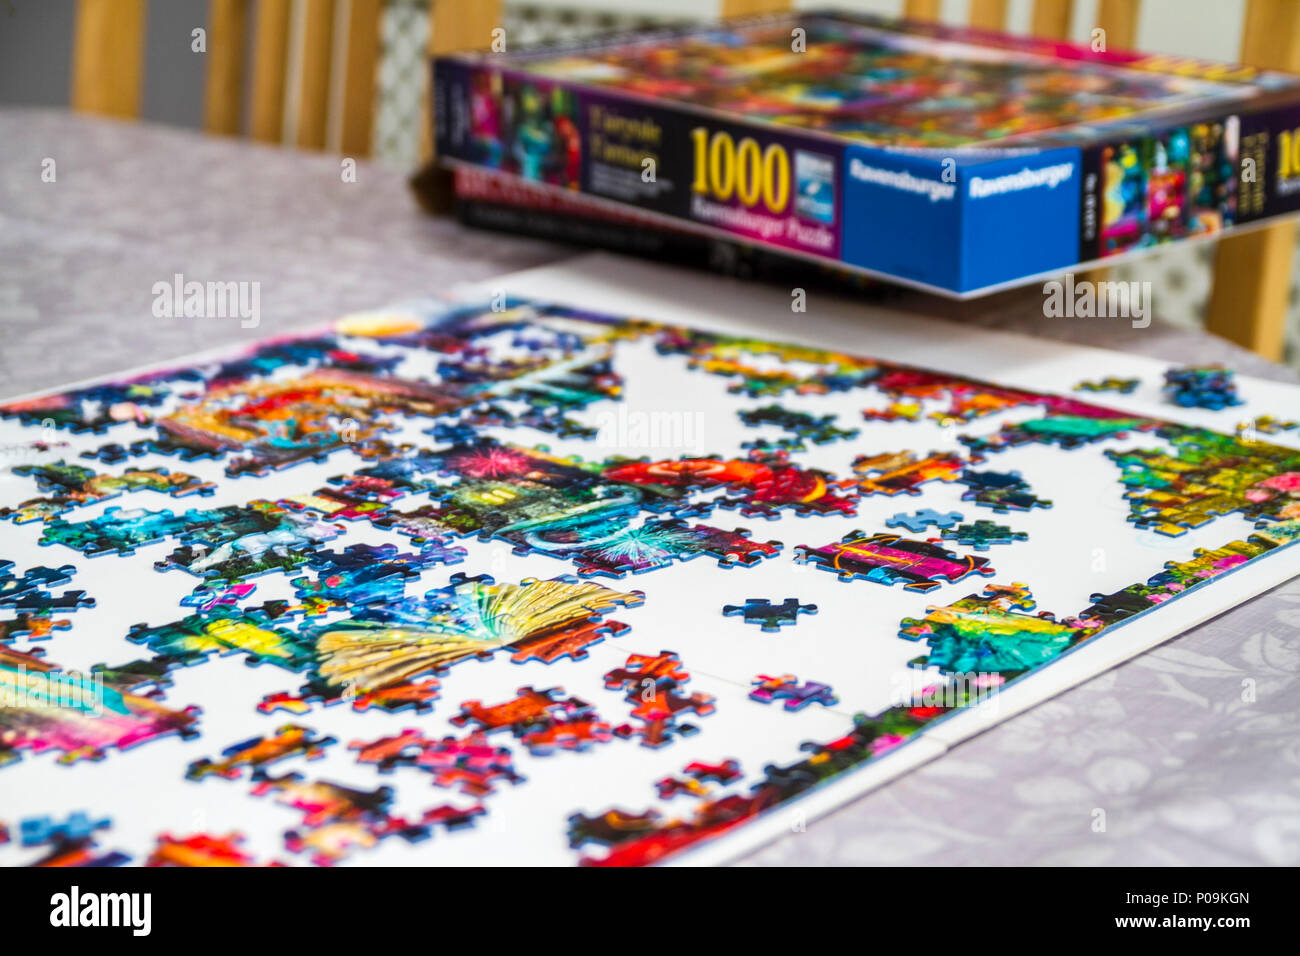 Large 1000 piece jigsaw puzzle pieces, multi colour, colourful educational family fun Stock Photo